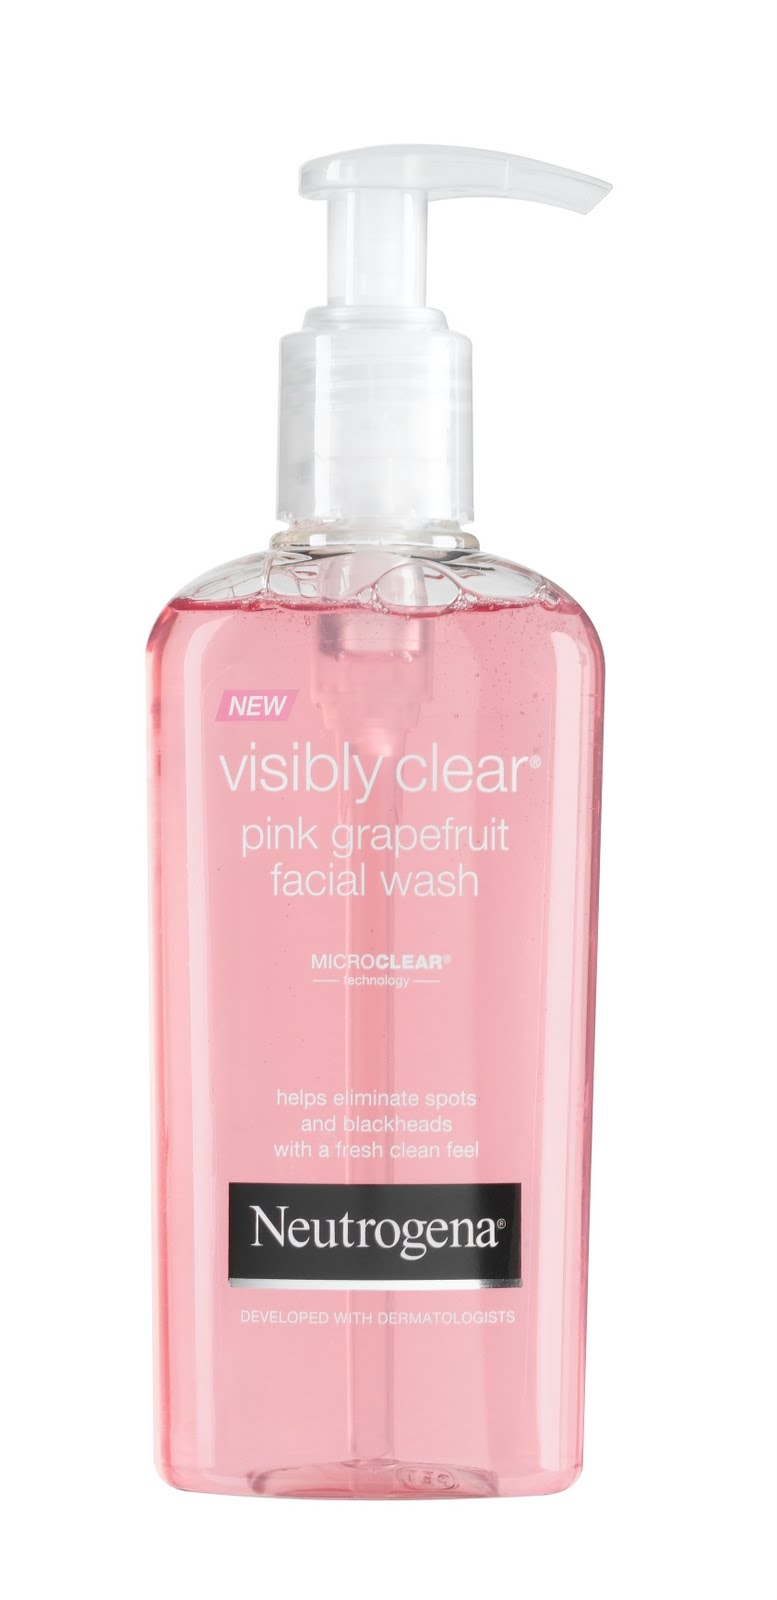 Neutrogena Visibly Clear Pink Grapefruit Facial Wash